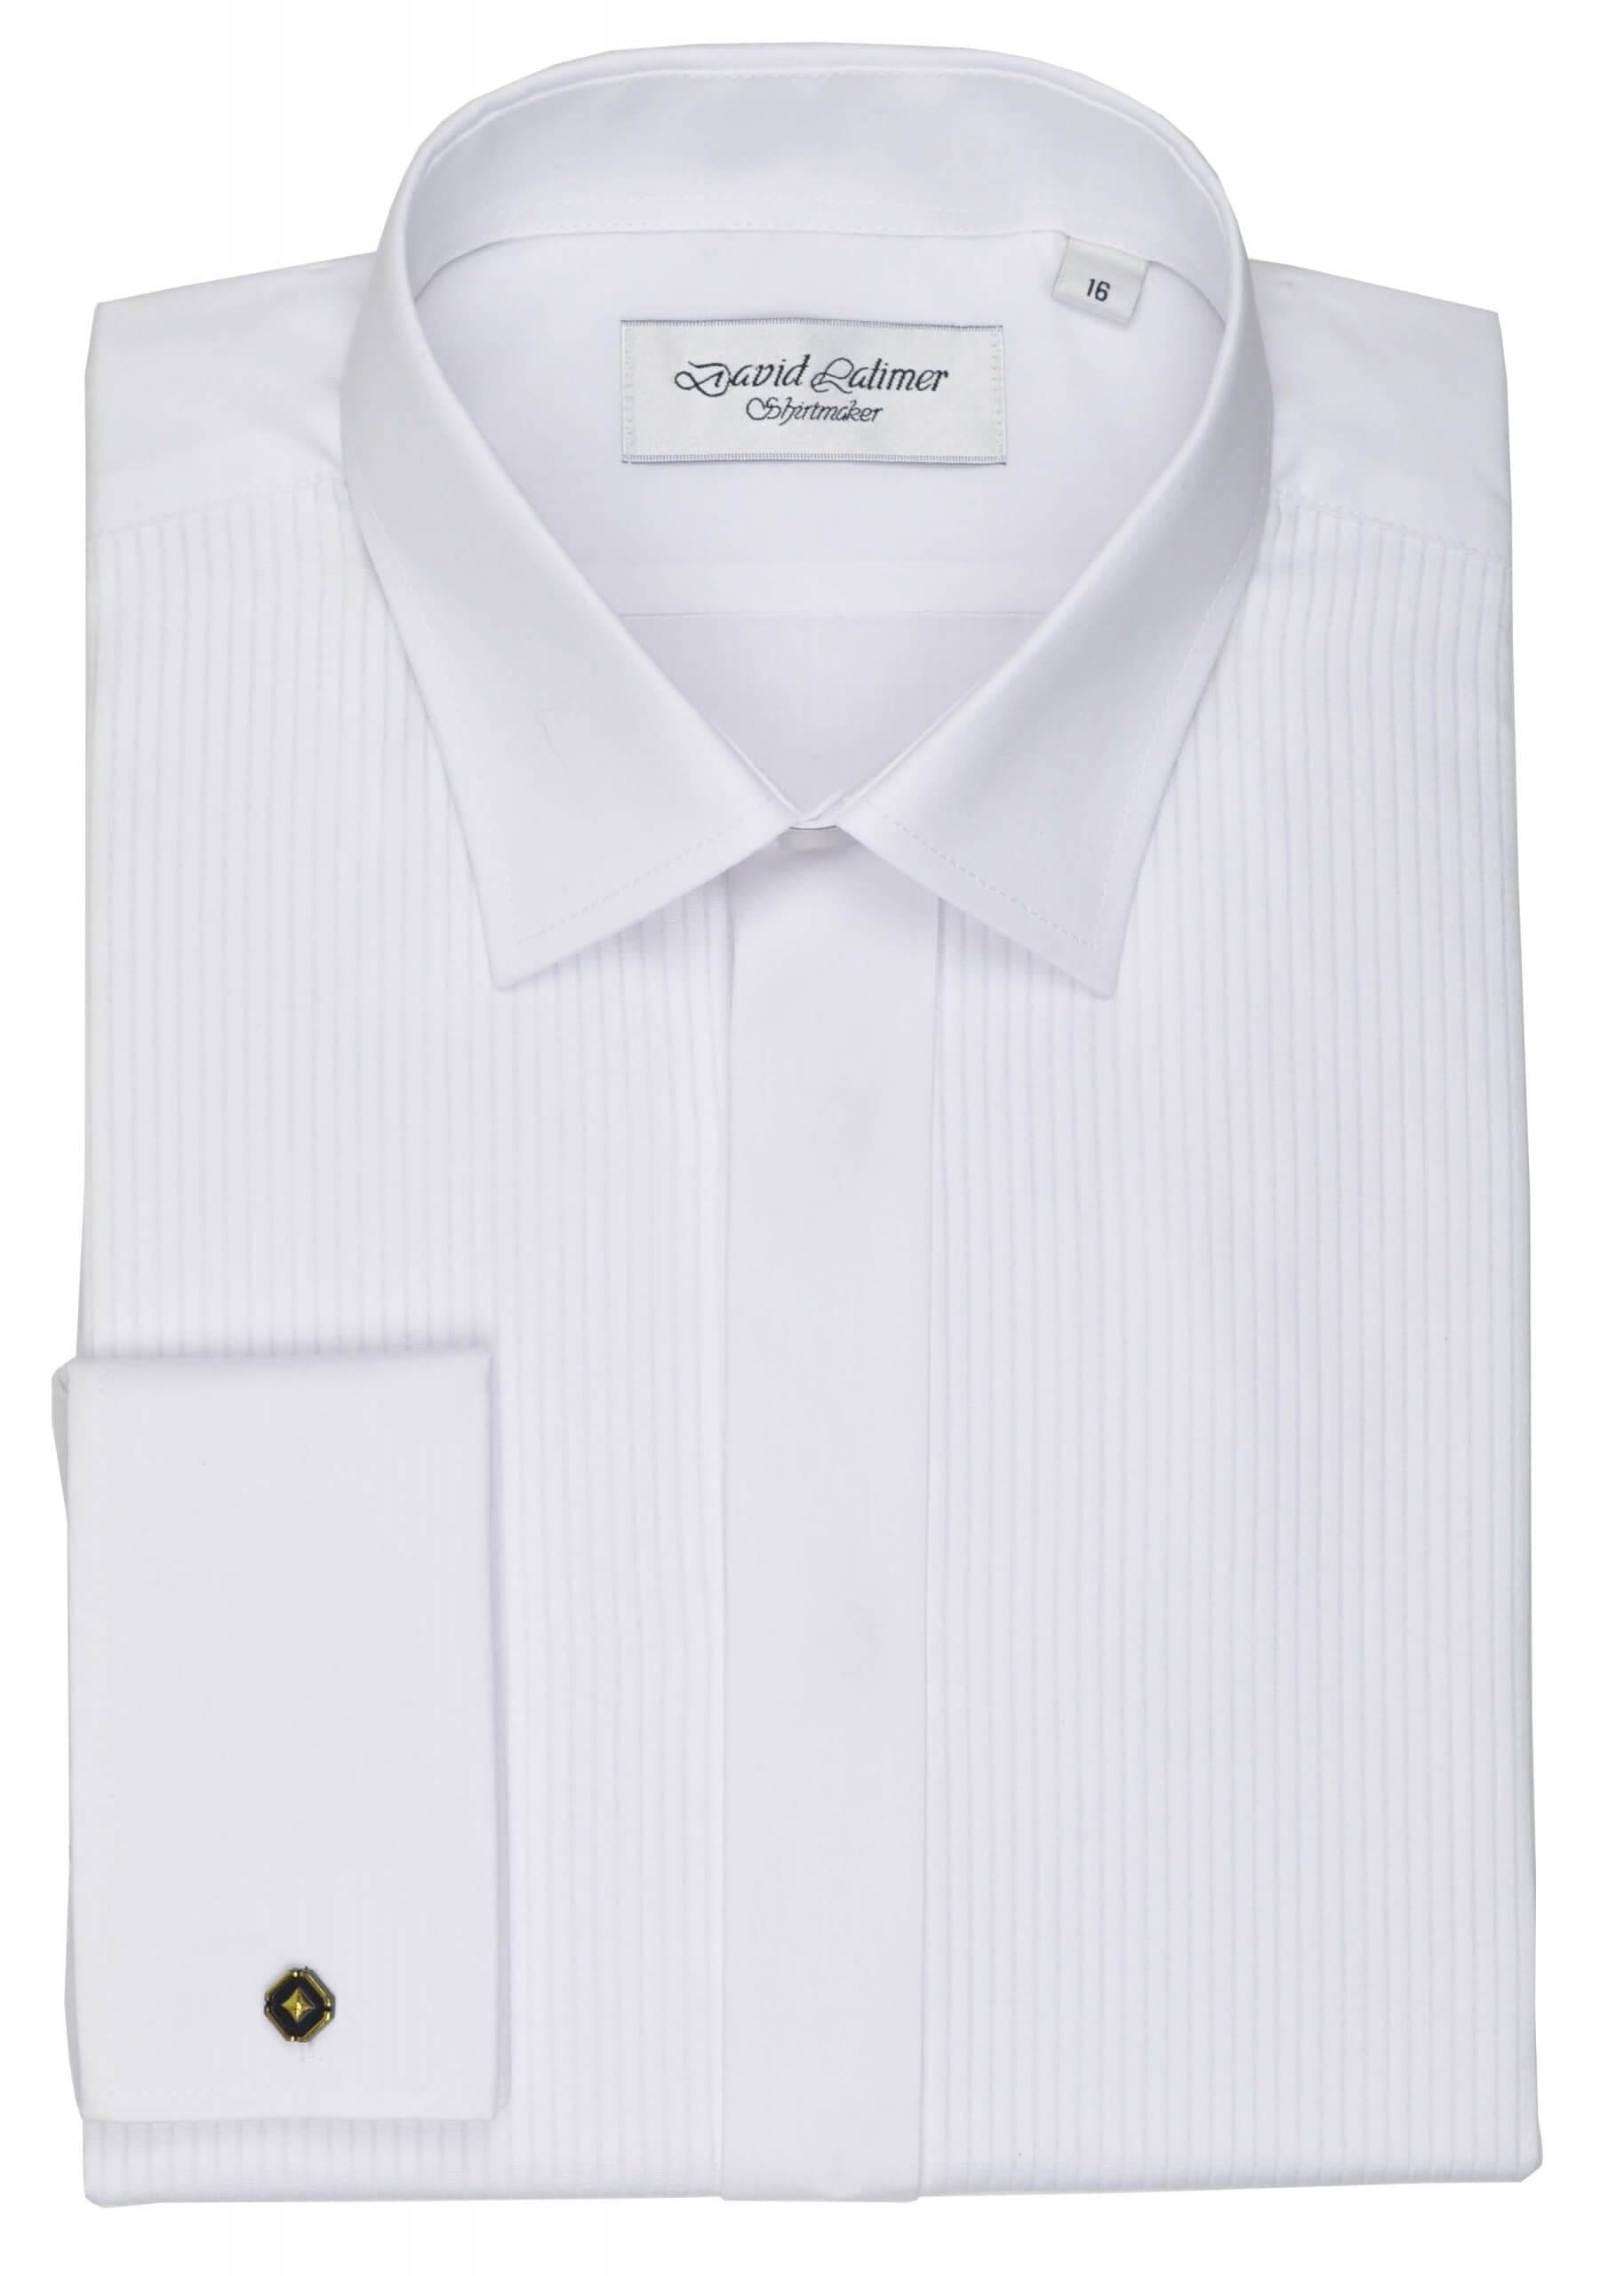 Pleated Front Dress Shirt, in Standard or Wing Collar